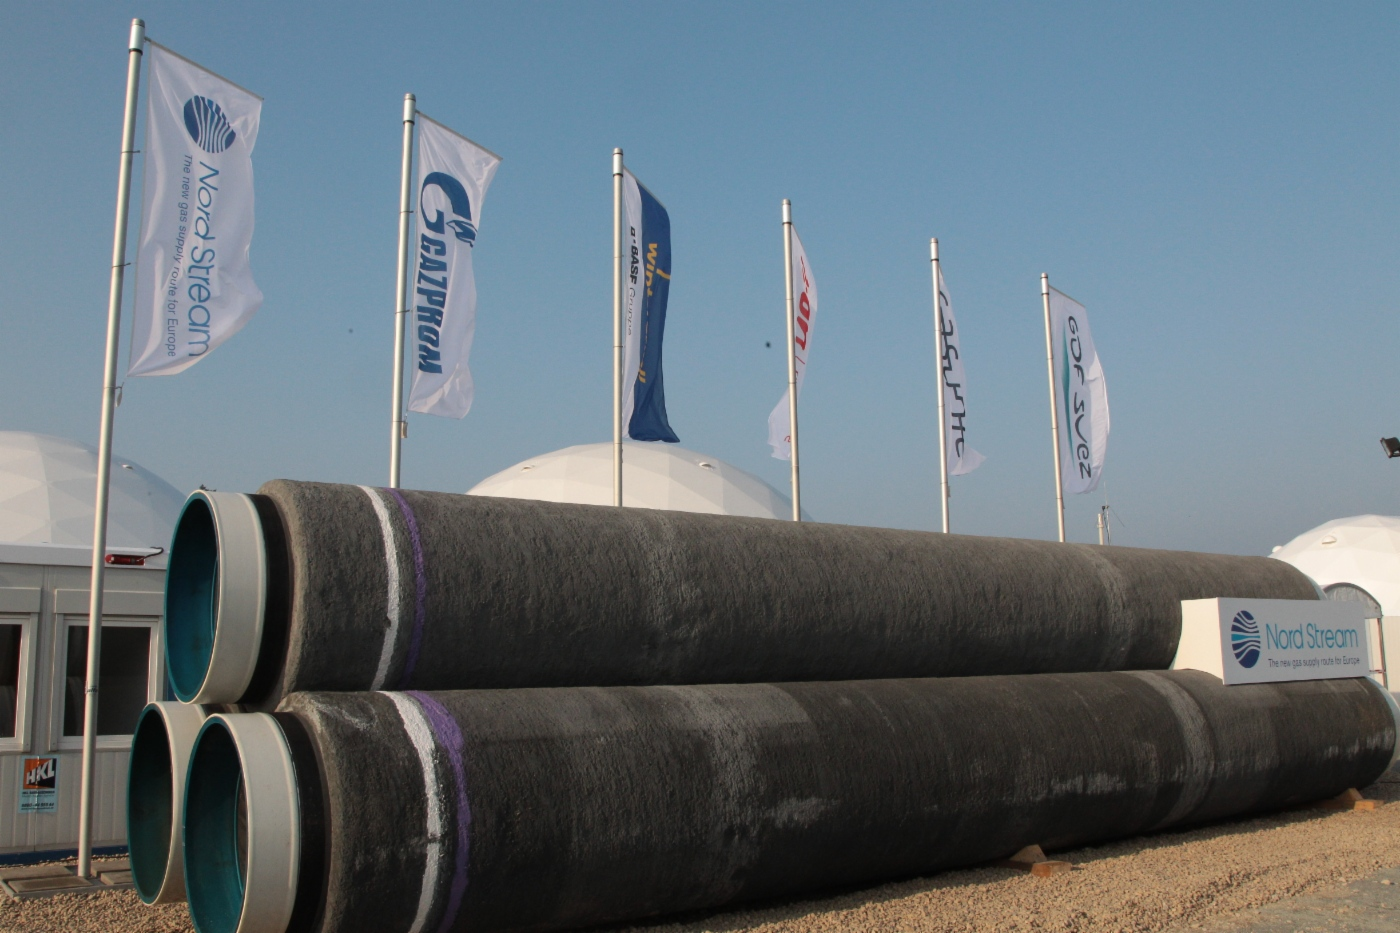 nordstream gp pipes